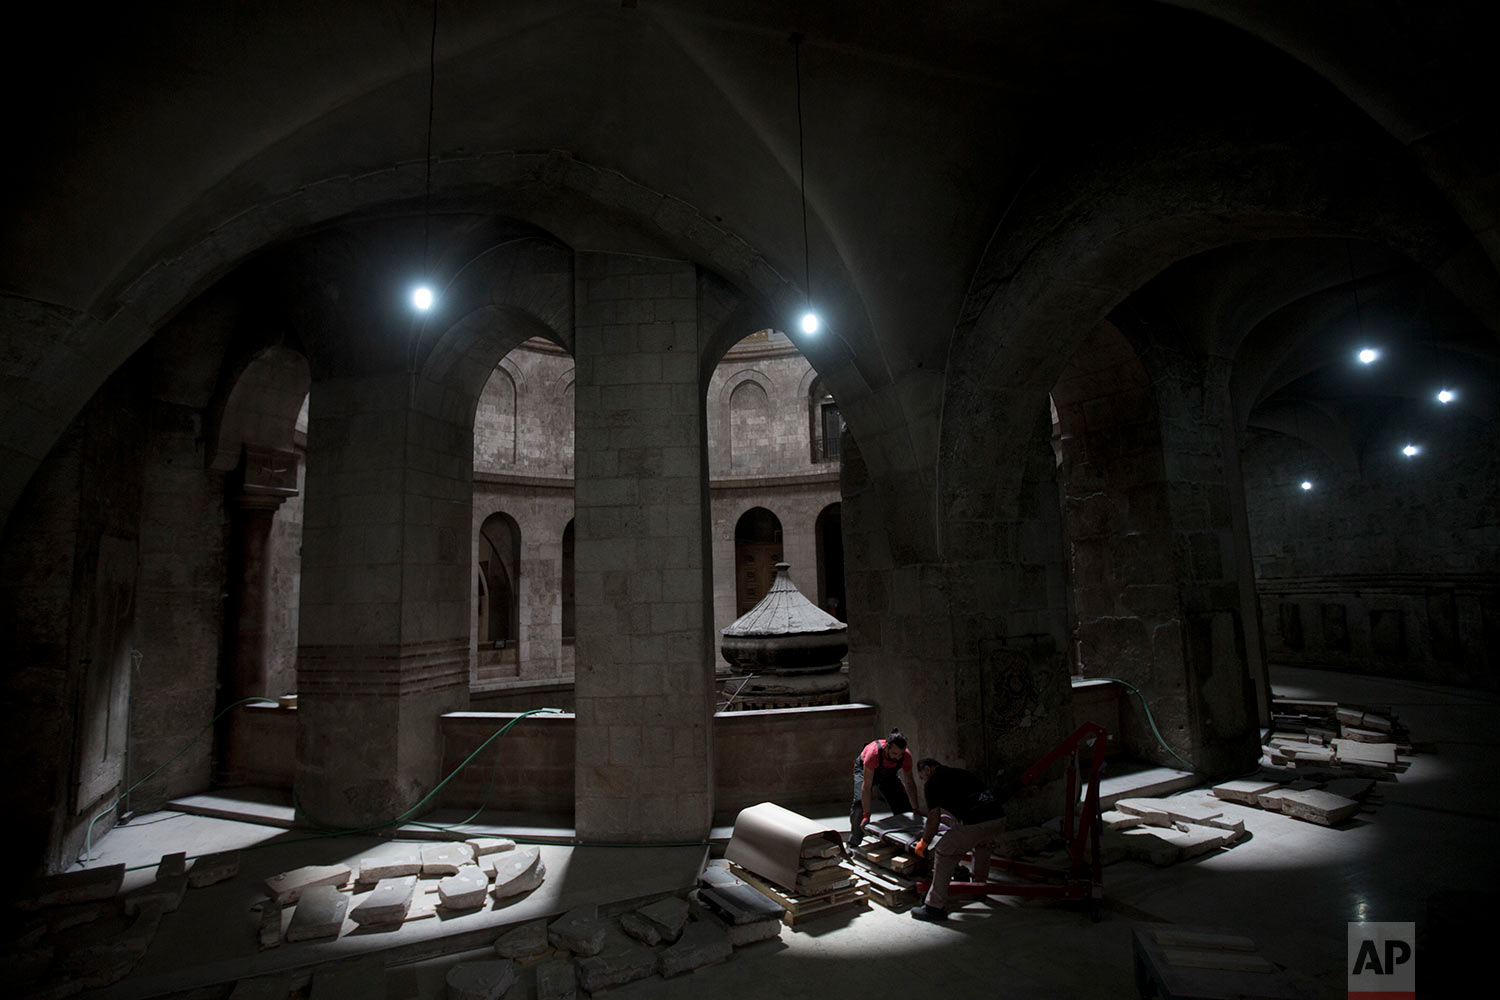 In this Friday, Oct. 7, 2016 photo, members of the conservation team lift a stone to clean and digitally scan before reinstalling it on the faÁade of the Edicule, the shrine that houses what is believed to be the tomb of Jesus in the Church of the Holy Sepulchre in Jerusalem's Old City. (AP Photo/Oded Balilty)